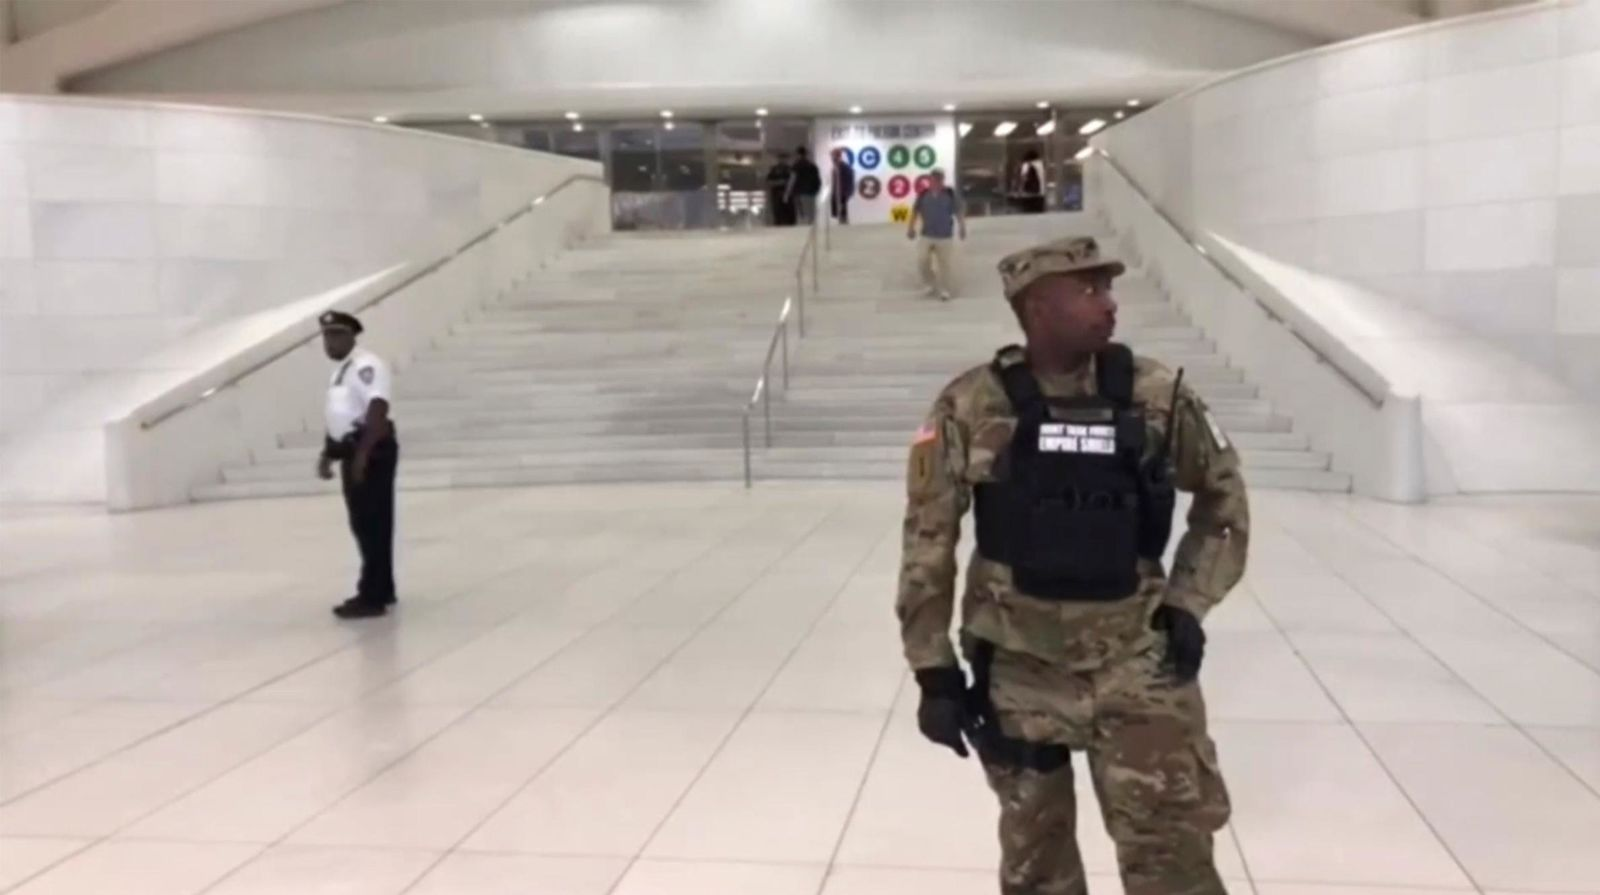 This still image provided by WABC-TV shows law enforcement standing in front of a New York City Subway entrance at the Oculus transportation hub after reports of a suspicious package on a subway platform in New York on Friday, Aug. 16, 2019. (WABC-TV via AP)